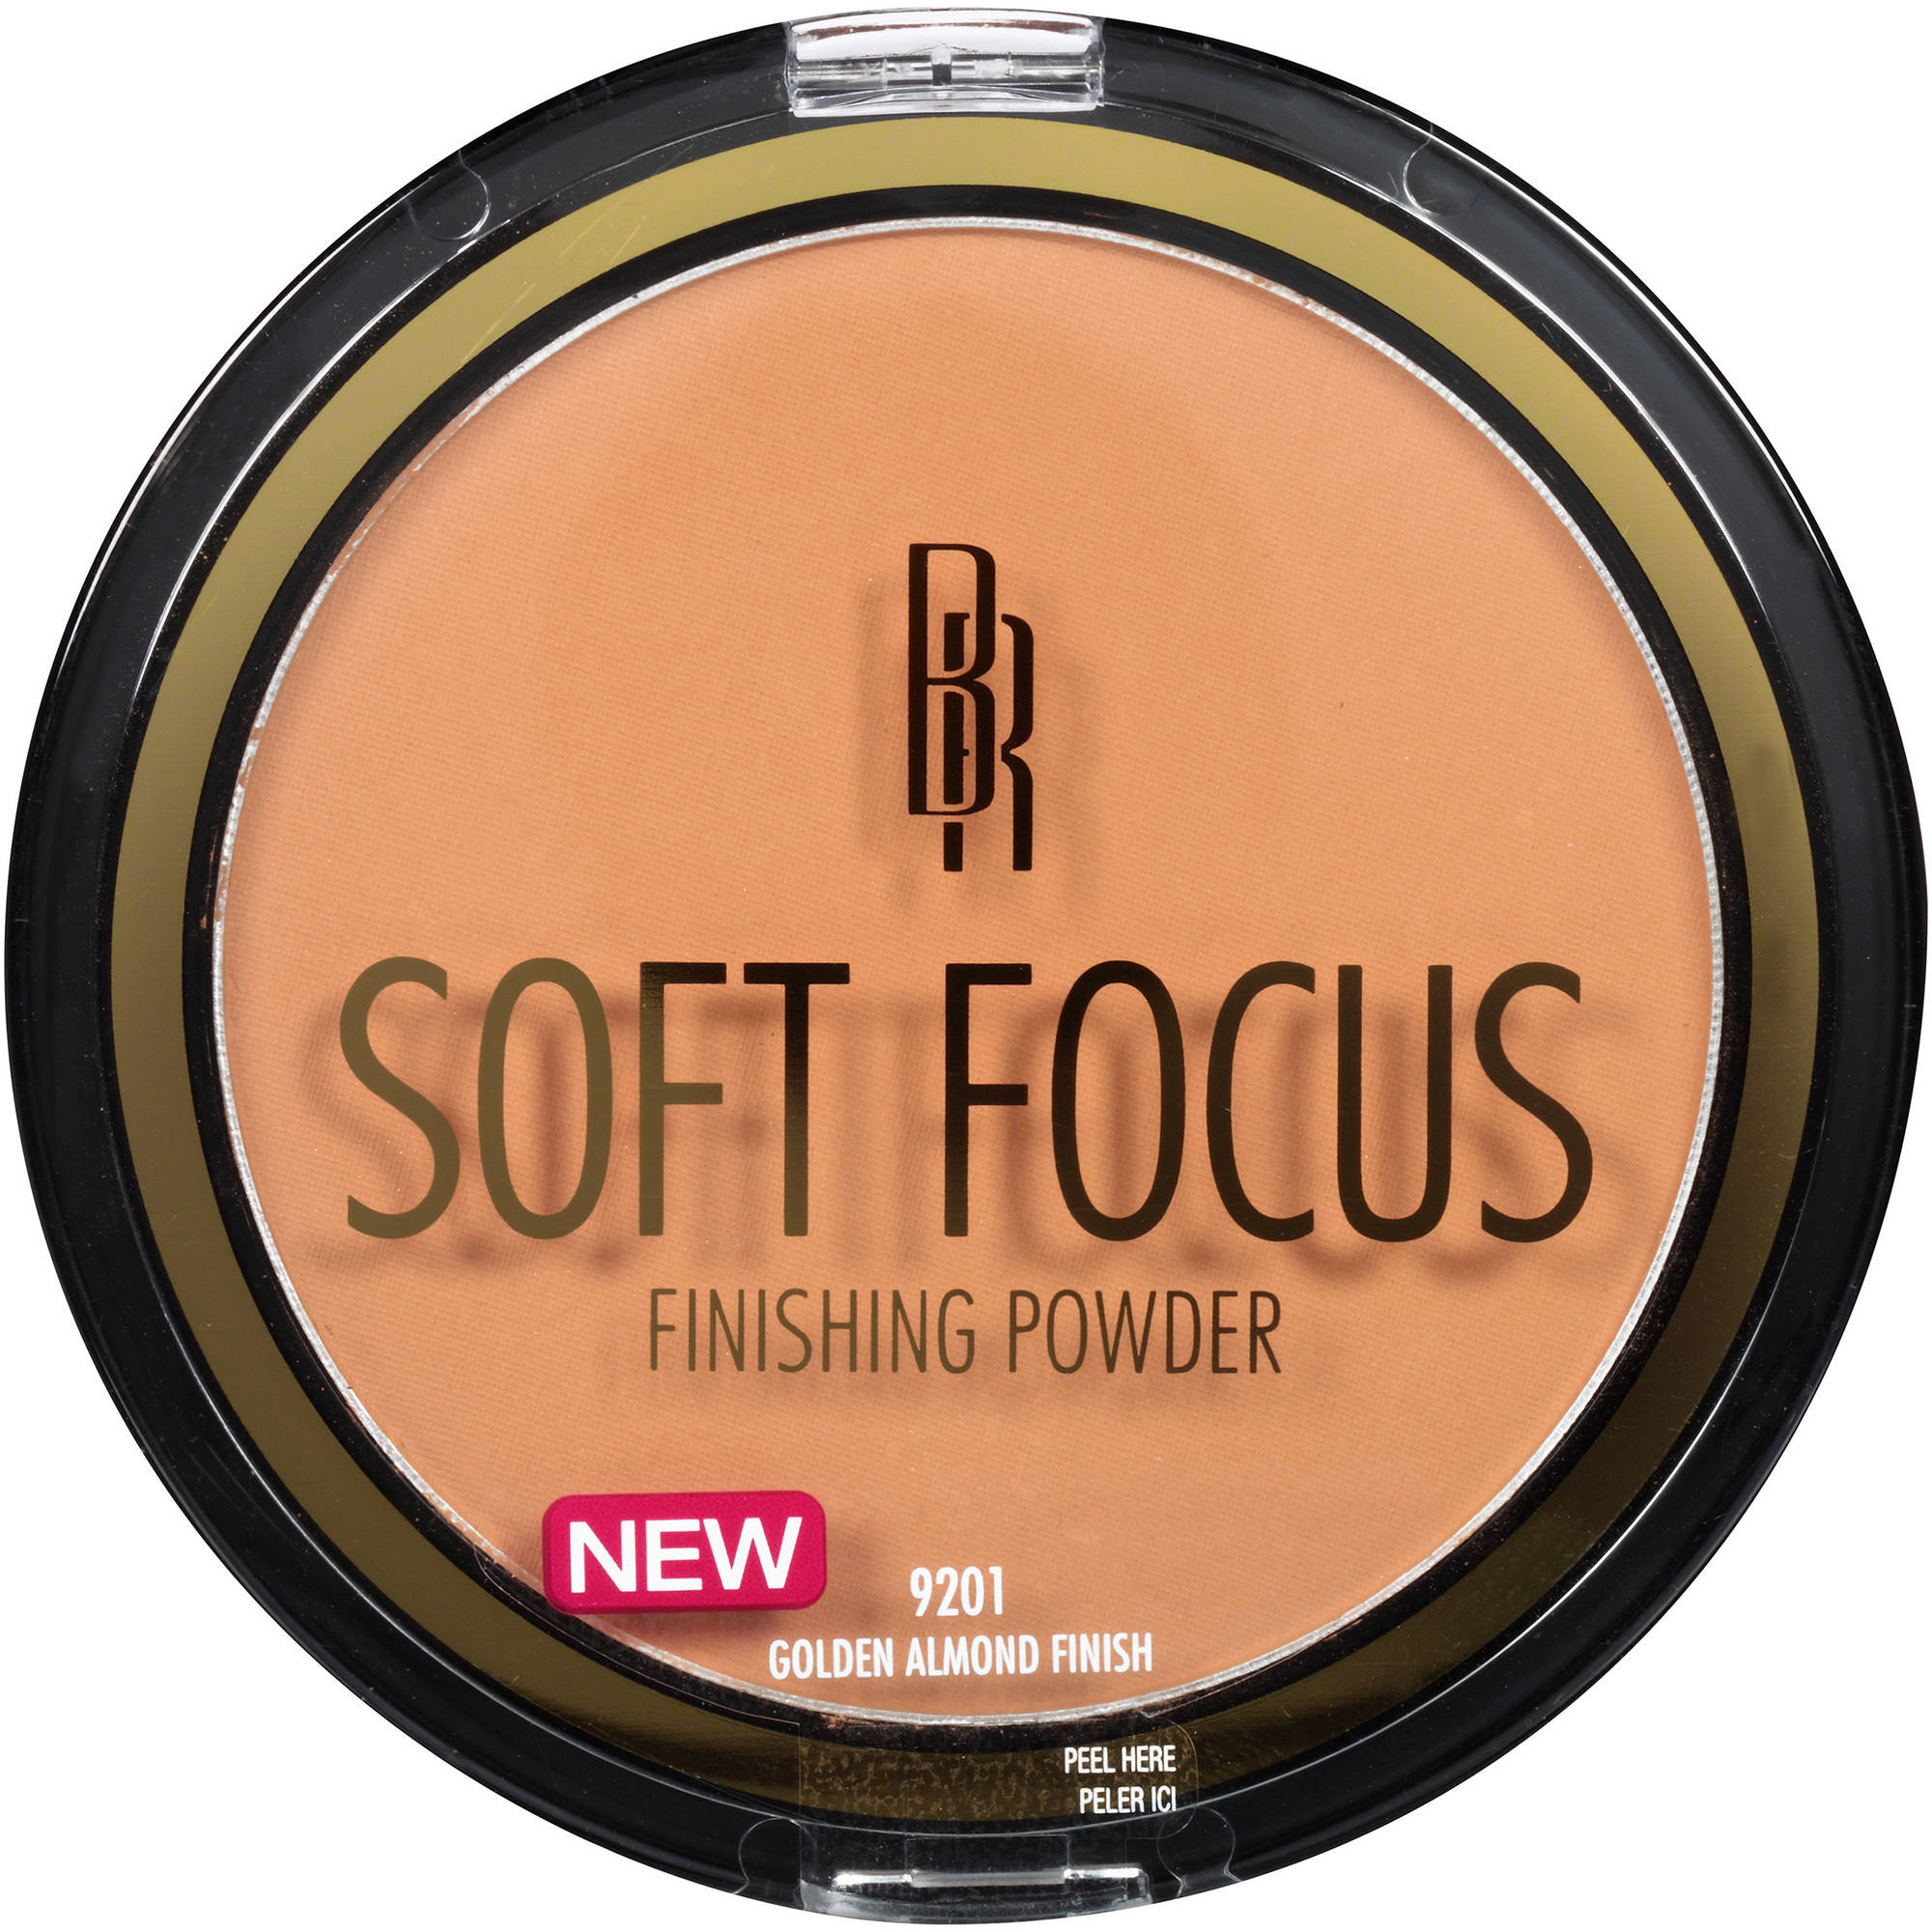 Black Radiance True Complexion Soft Focus Finishing Powder, 9201 Golden Almond Finish, 0.46 oz